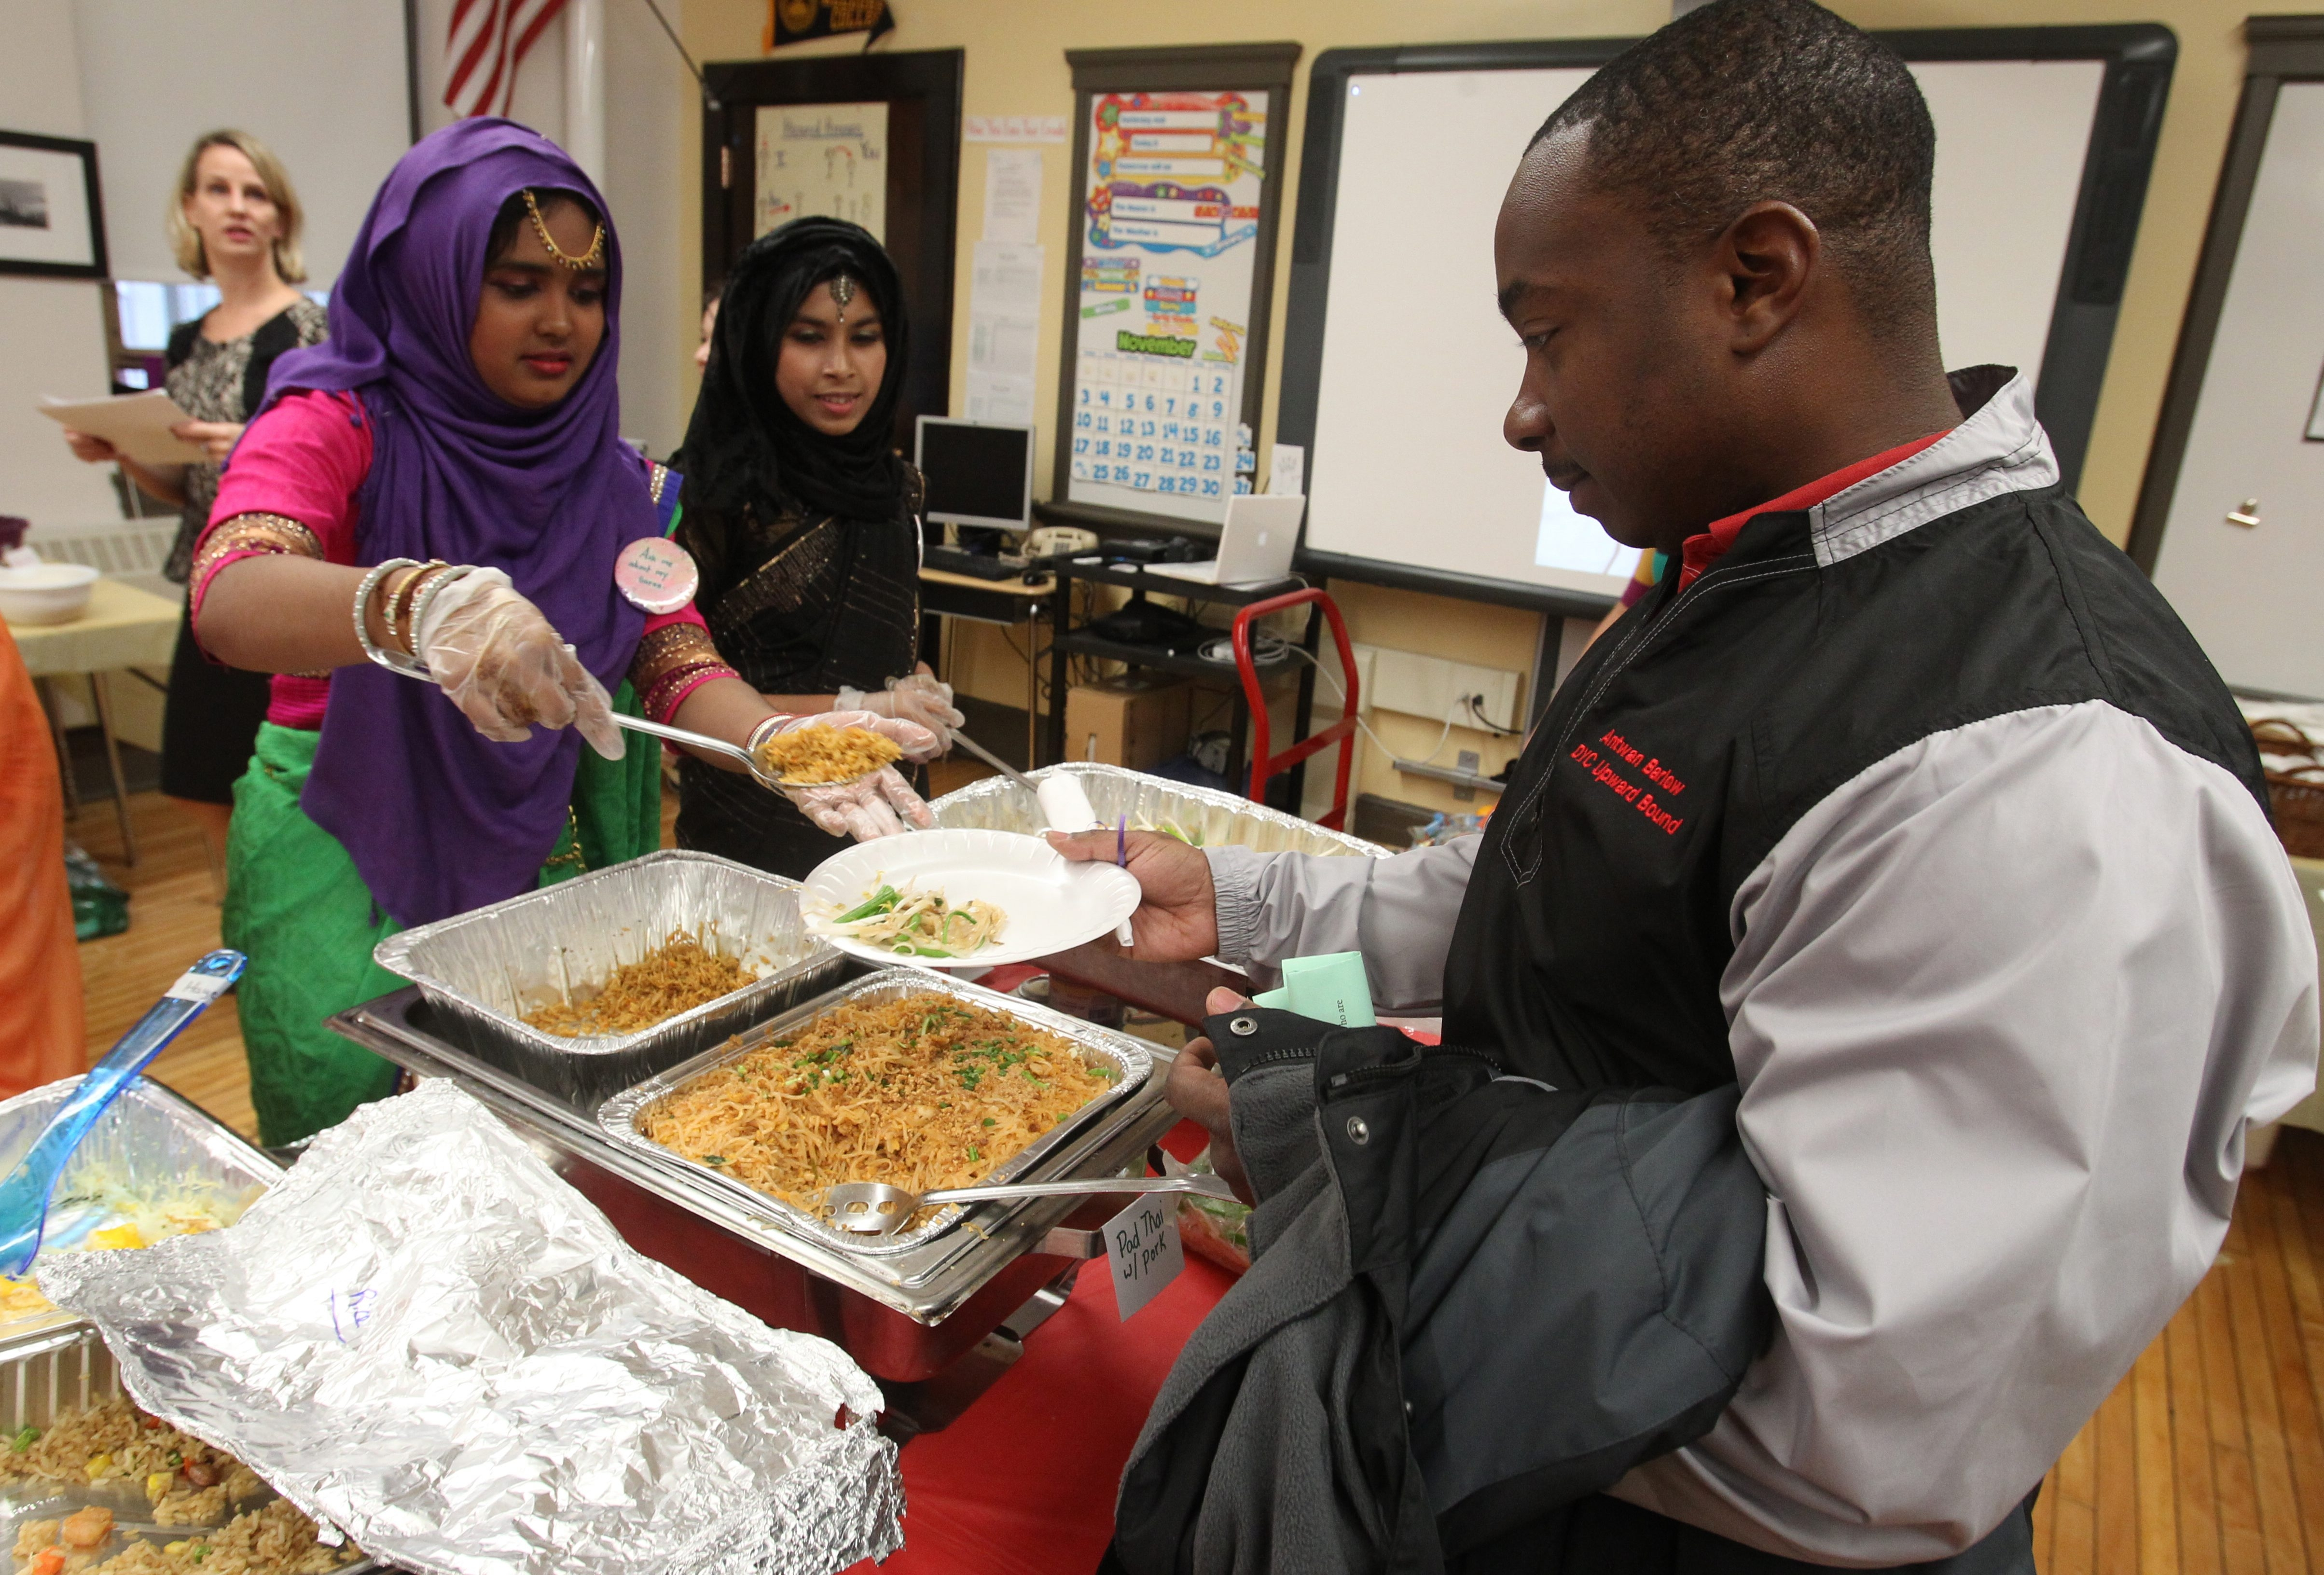 Wahida Dipa, 17, left, and Afnan Ahmed ,18, serve food to Antwan Barlow as about 200 students share food and stories about their journey to America at the International Preparatory School  on Tuesday.